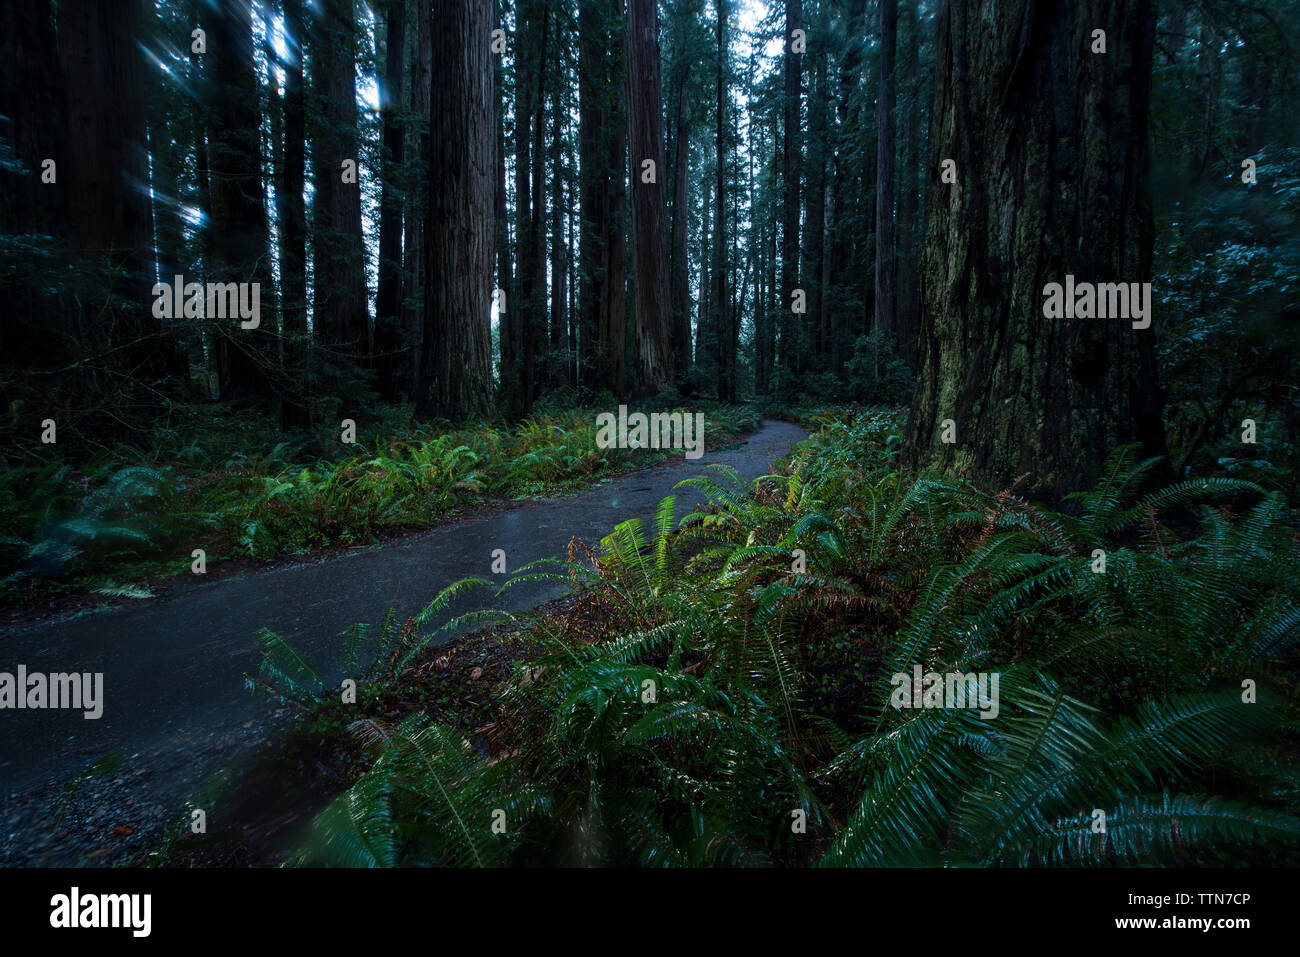 Road amidst plants and trees at Jedediah Smith Redwoods State Park - Stock Image